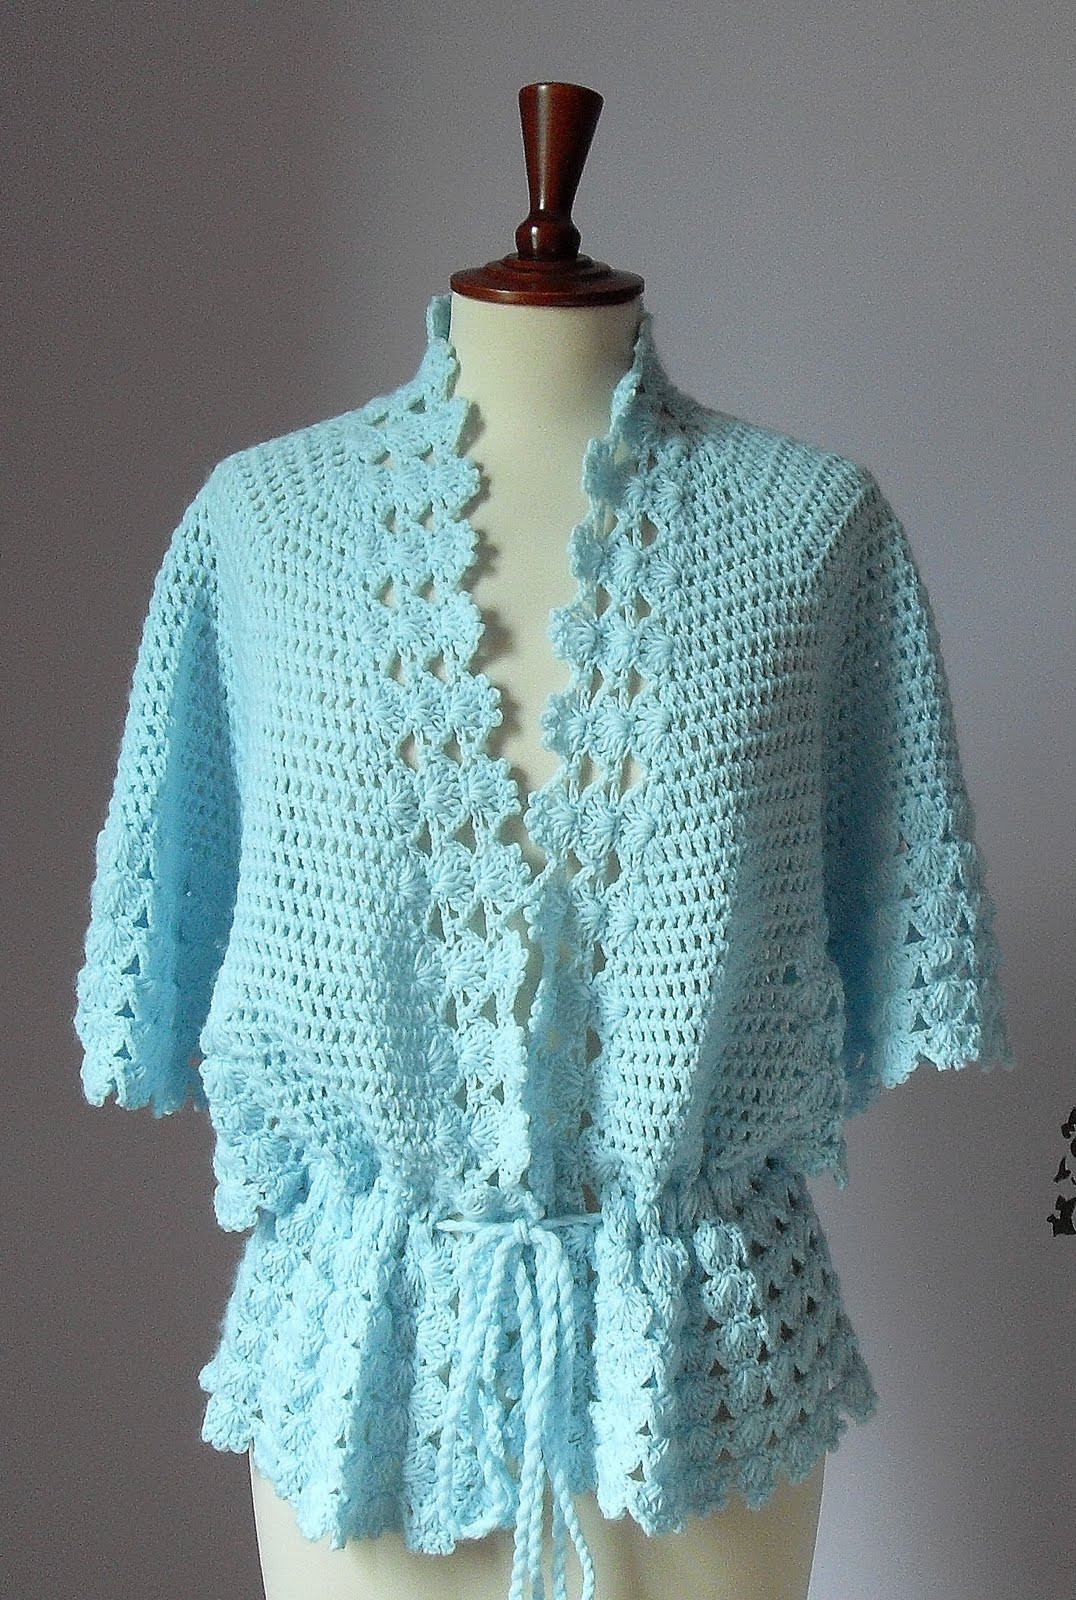 Fresh Silvia66 Crocheted Bed Jacket or Light Cardigan Crochet Jackets Patterns Of Top 44 Photos Crochet Jackets Patterns